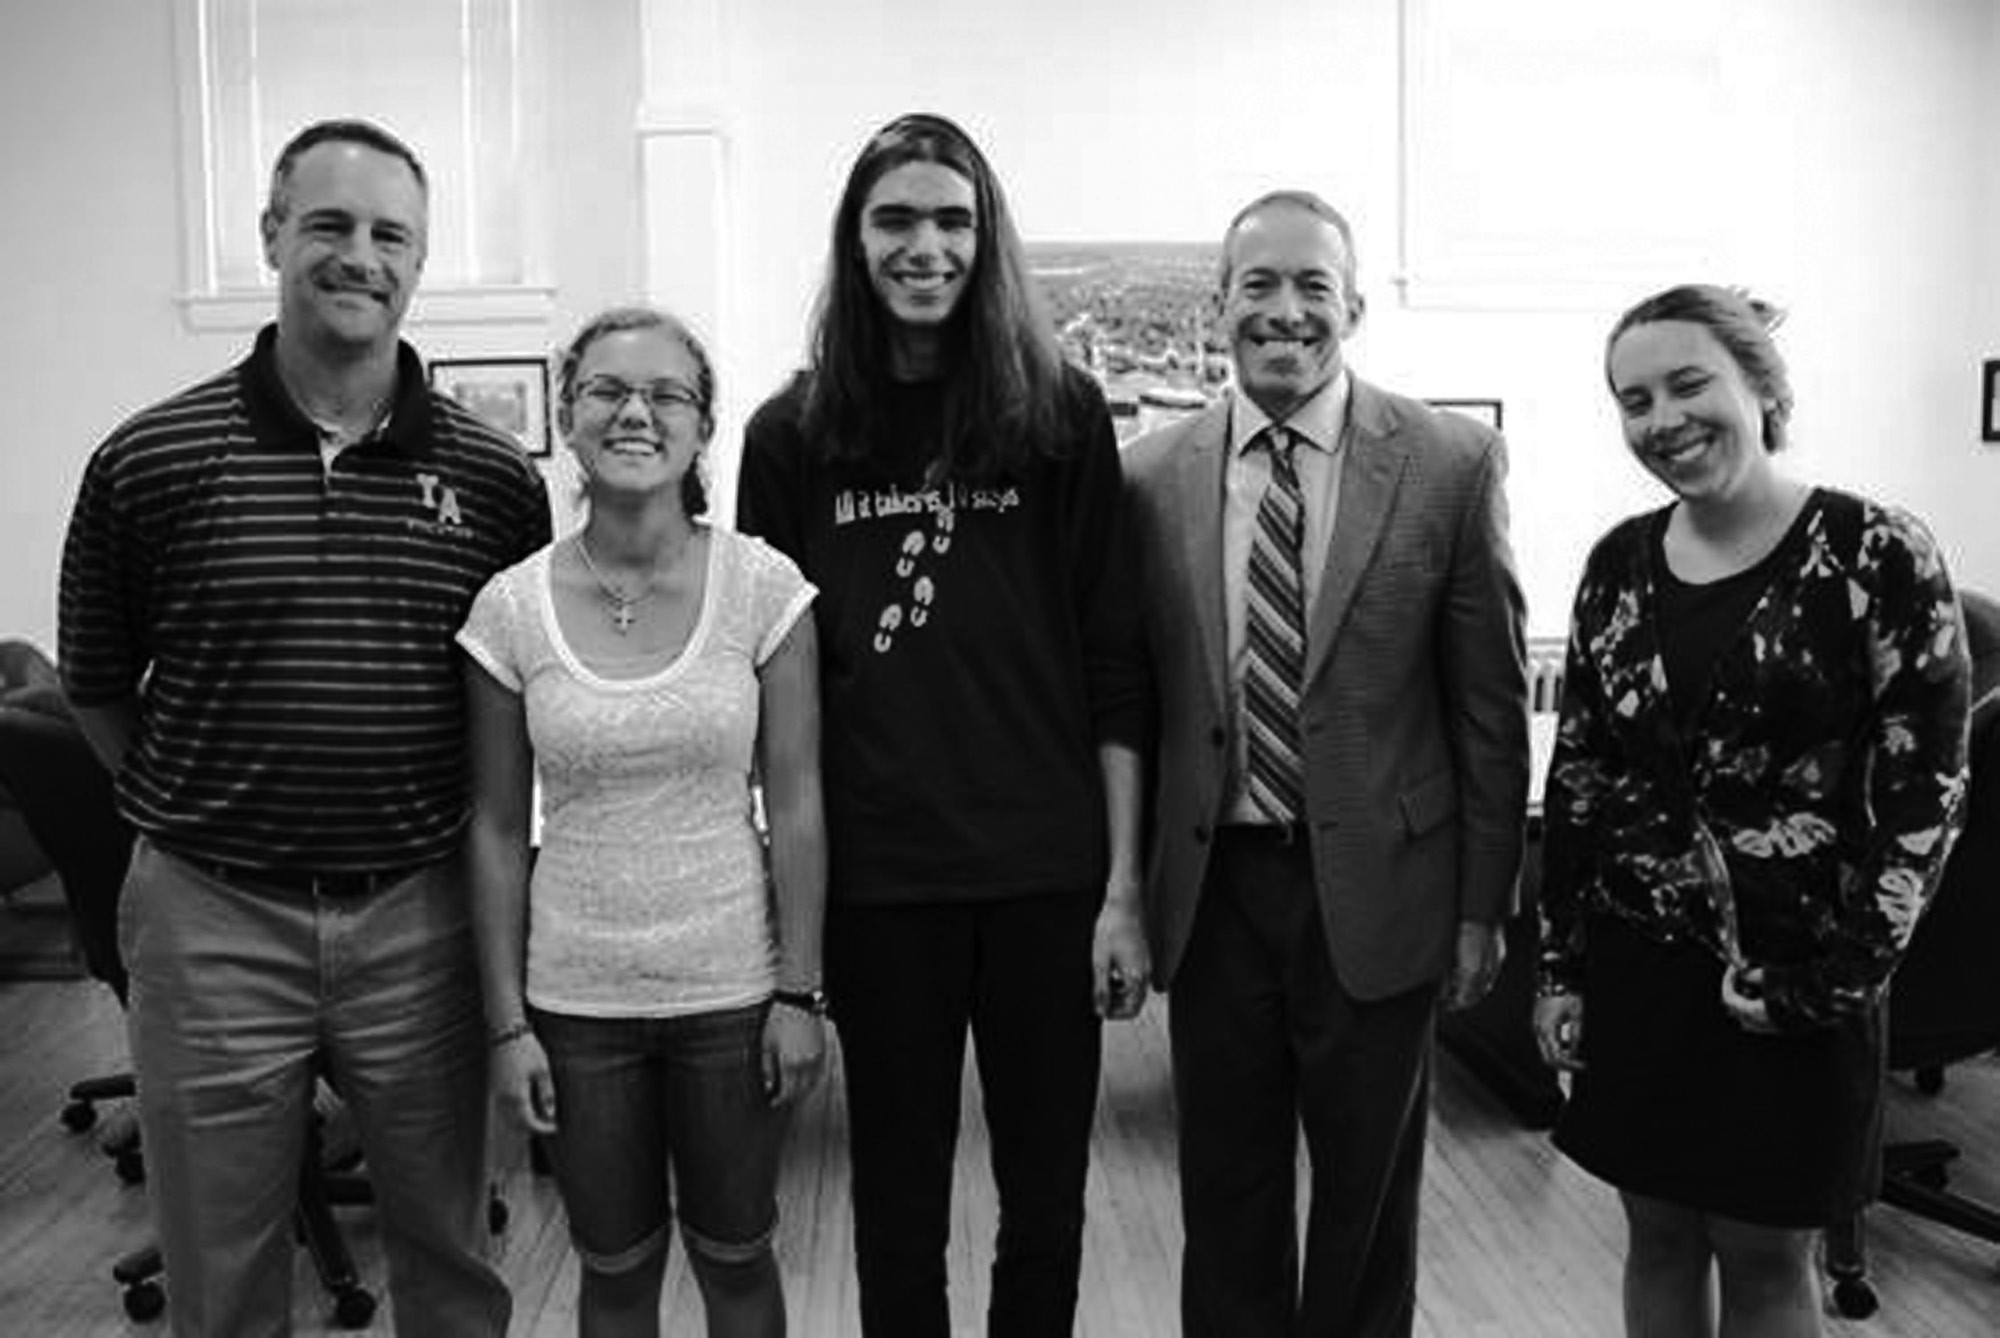 Picture caption: From left, Thornton Academy Guidance Counselor Jeff Camire, students Alanna Haslam and Tristan Falardeau, Thornton Academy Headmaster Rene Menard and Thornton Guidance Counselor Kelsey Ramsey.